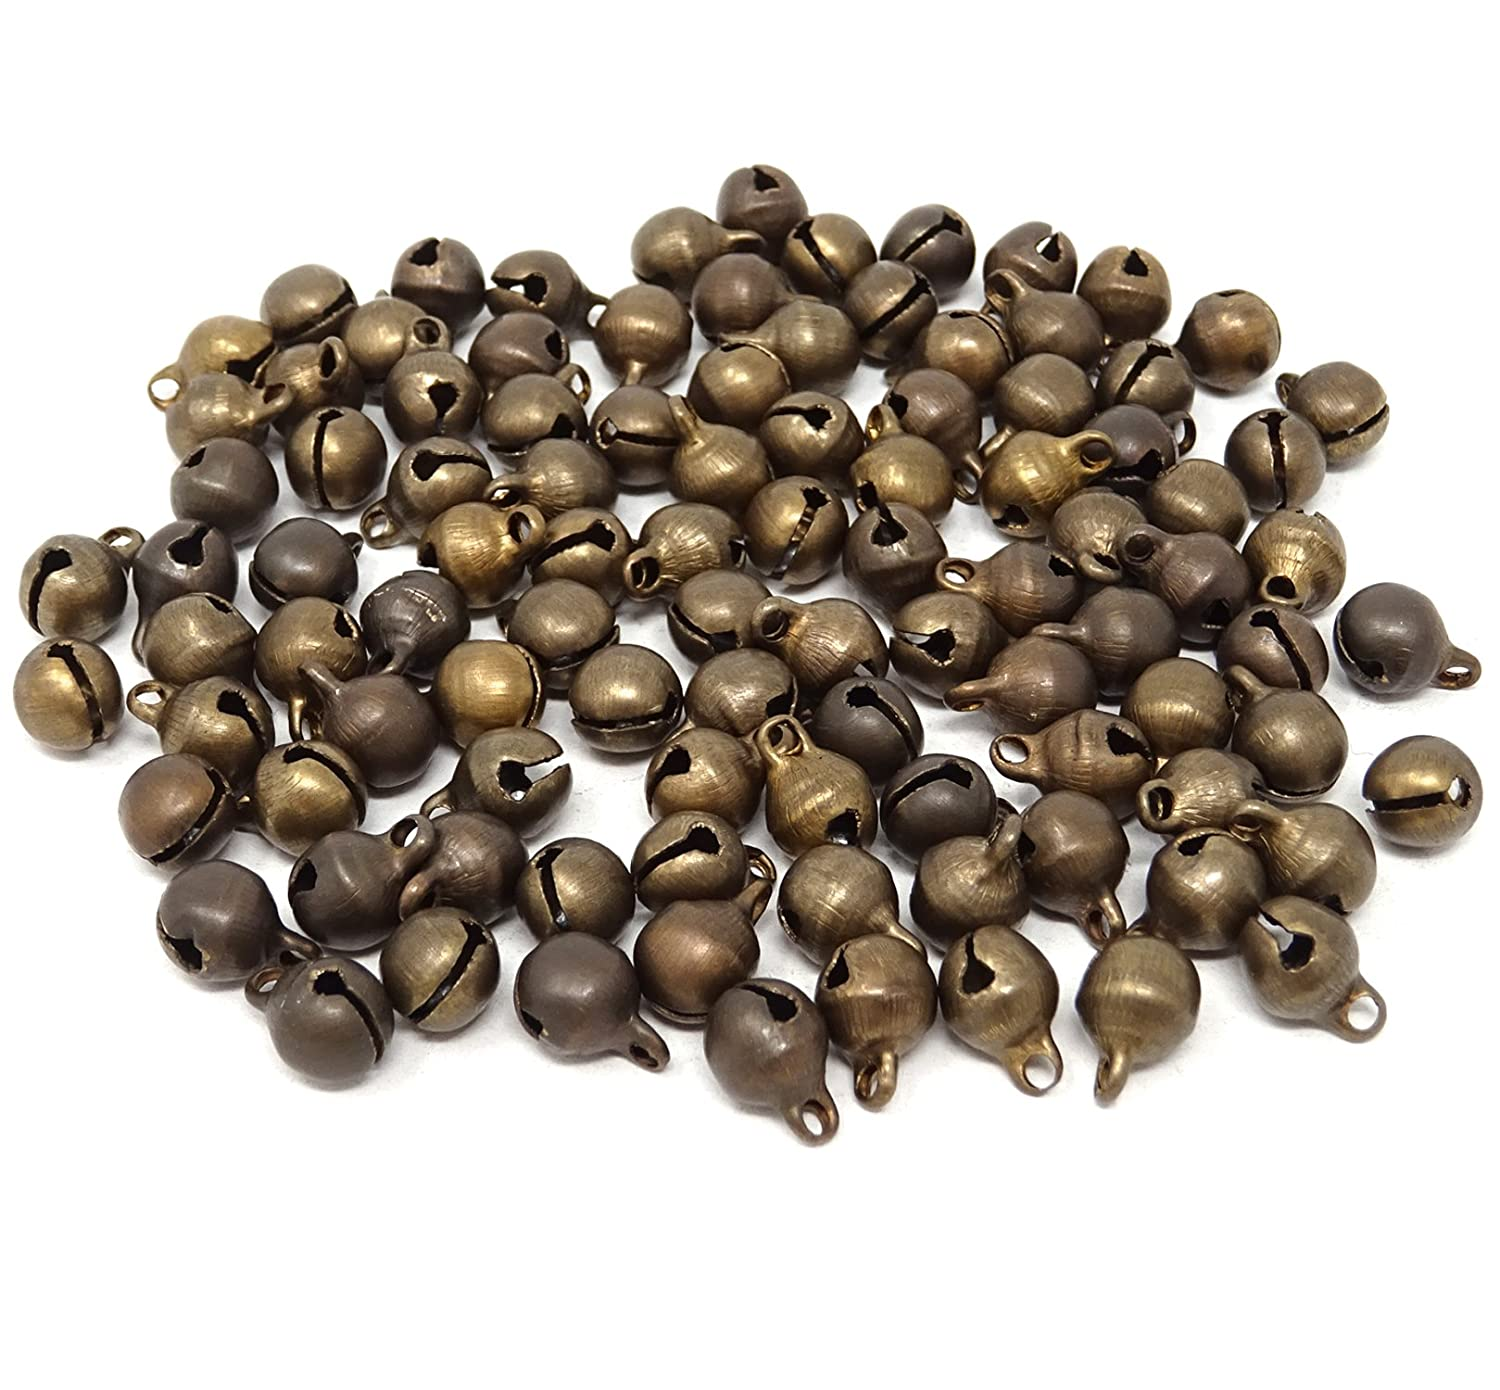 Honbay 100pcs Fashion Bronze Jingle Bell/ Small Bell/ Mini Bell for DIY Bracelet Anklets Necklace Knitting/Jewelry Making 4336848471